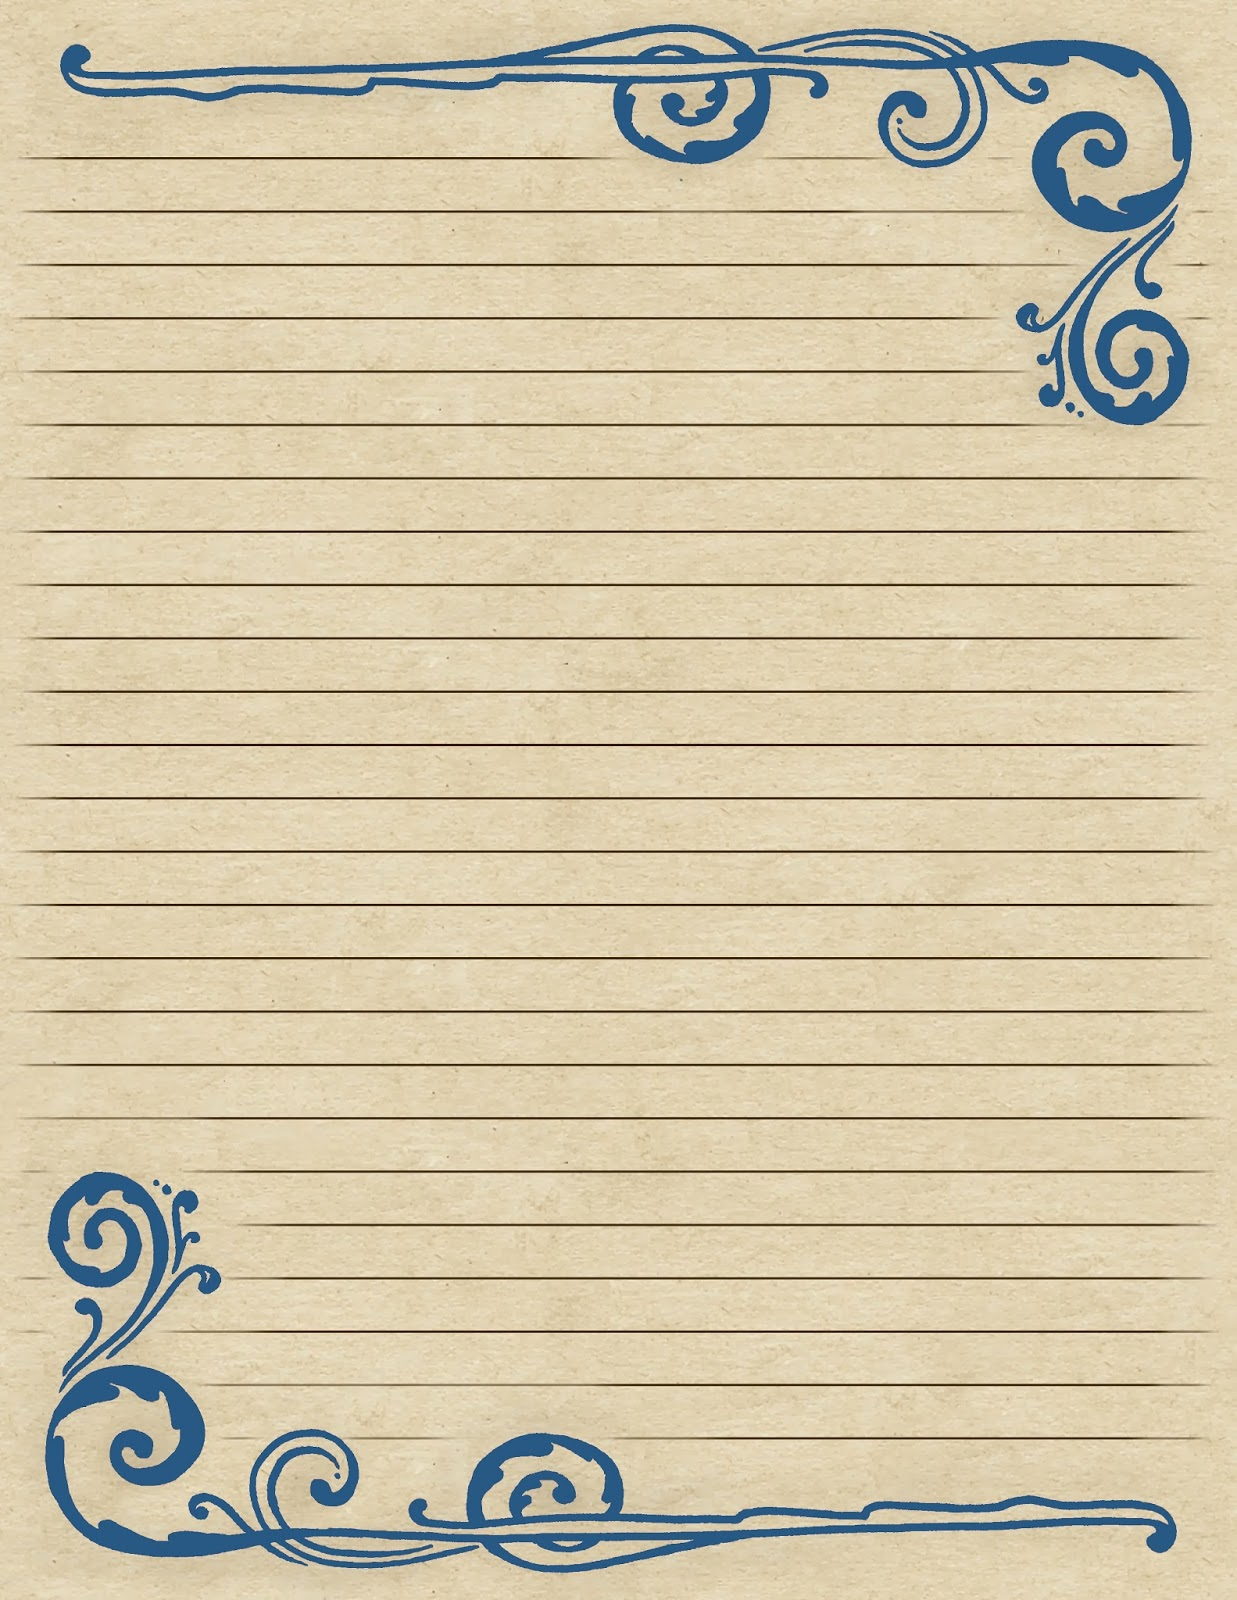 Lilac Lavender Swirling Border Lined Paper – Lined Border Paper